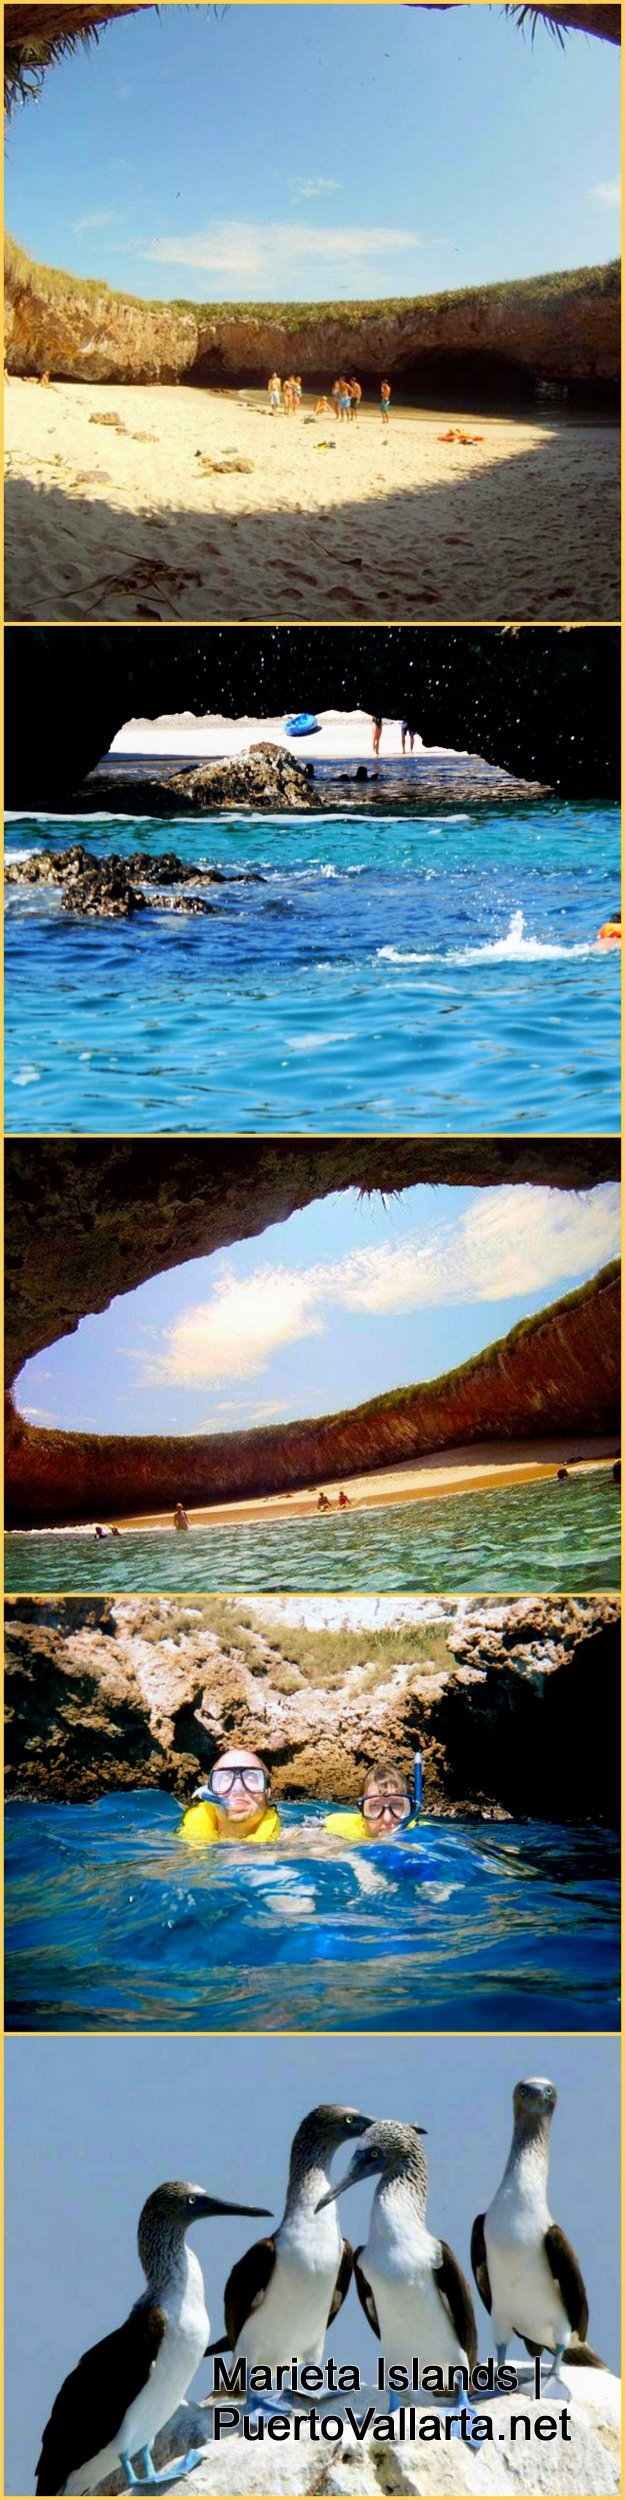 """Photos from the Marieta Islands, the beach is called """"Lovers' Beach"""" and the islands are close to Puerto Vallarta, Mexico. Read more: http://www.puertovallarta.net/what_to_do/marieta-islands.php"""